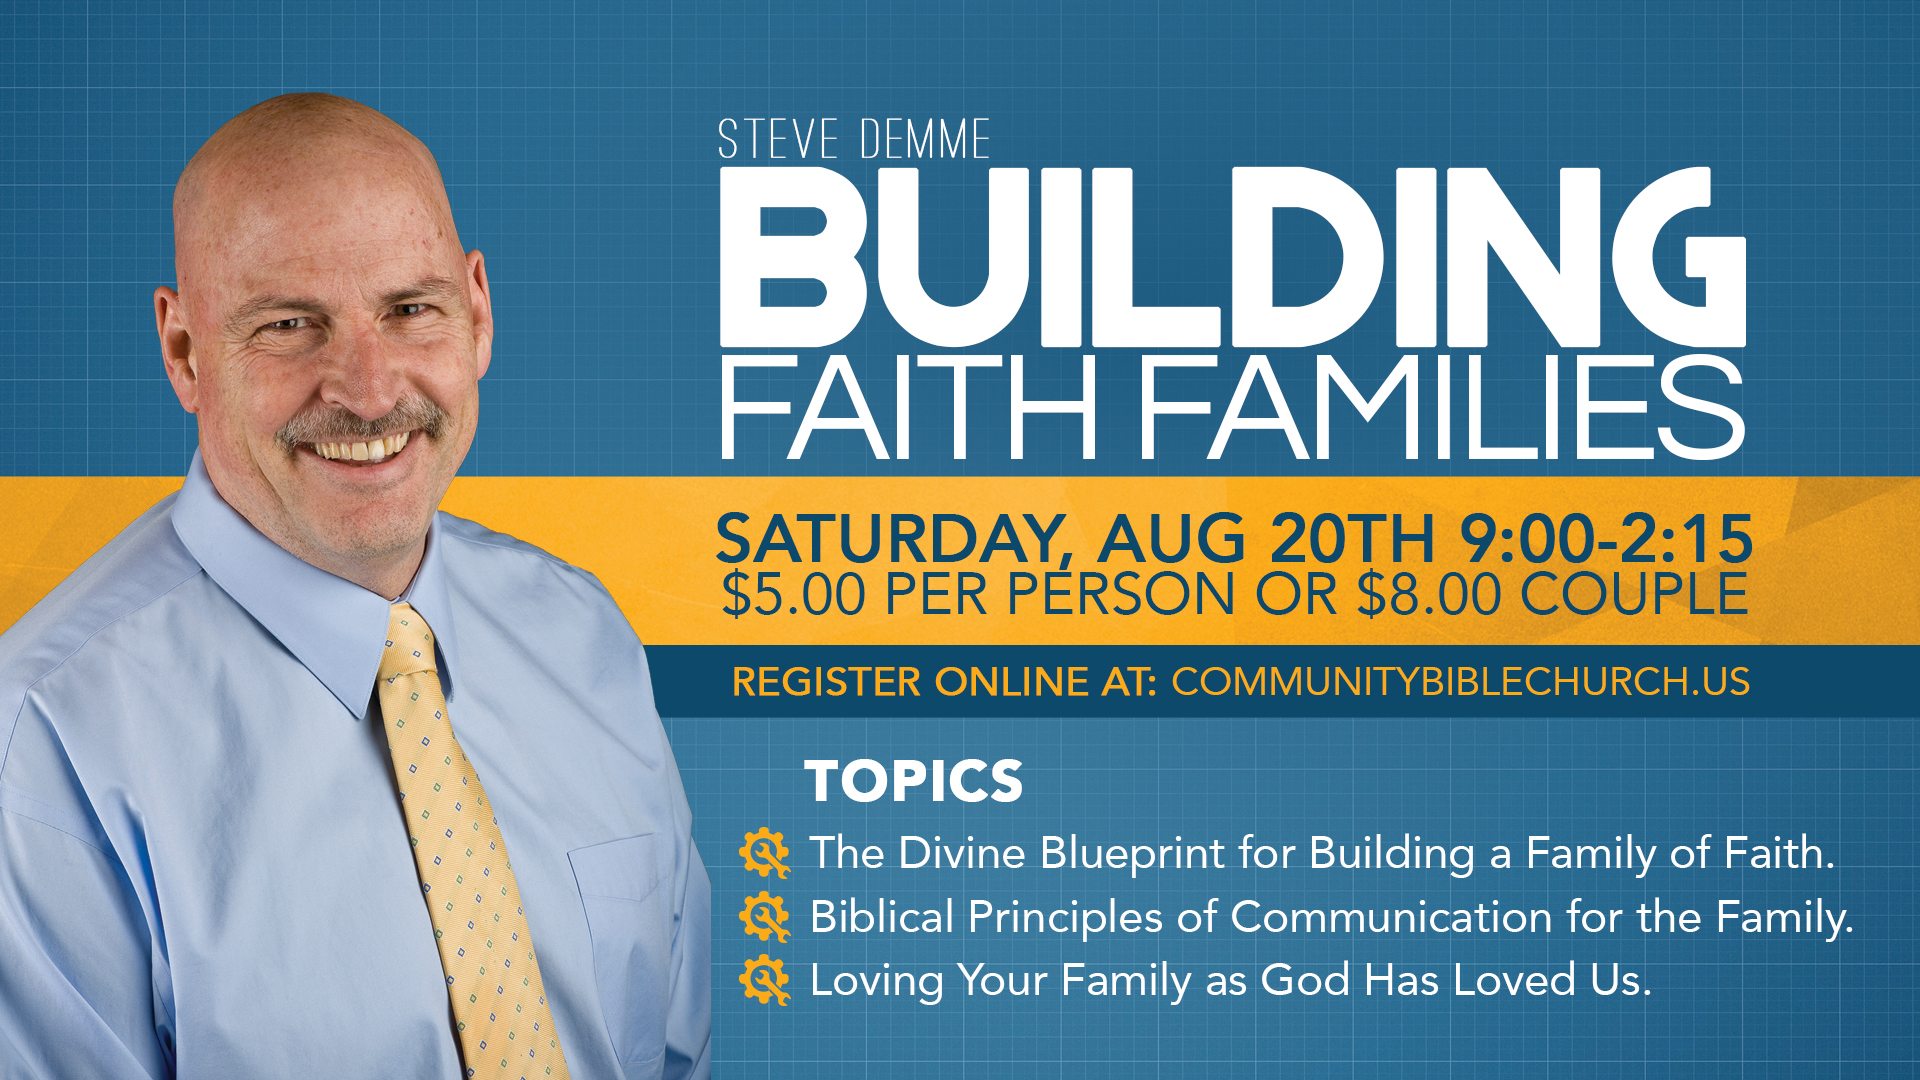 Register today community bible church christian academy you are invited to a family conference featuring the founder of math u see steve demme malvernweather Gallery